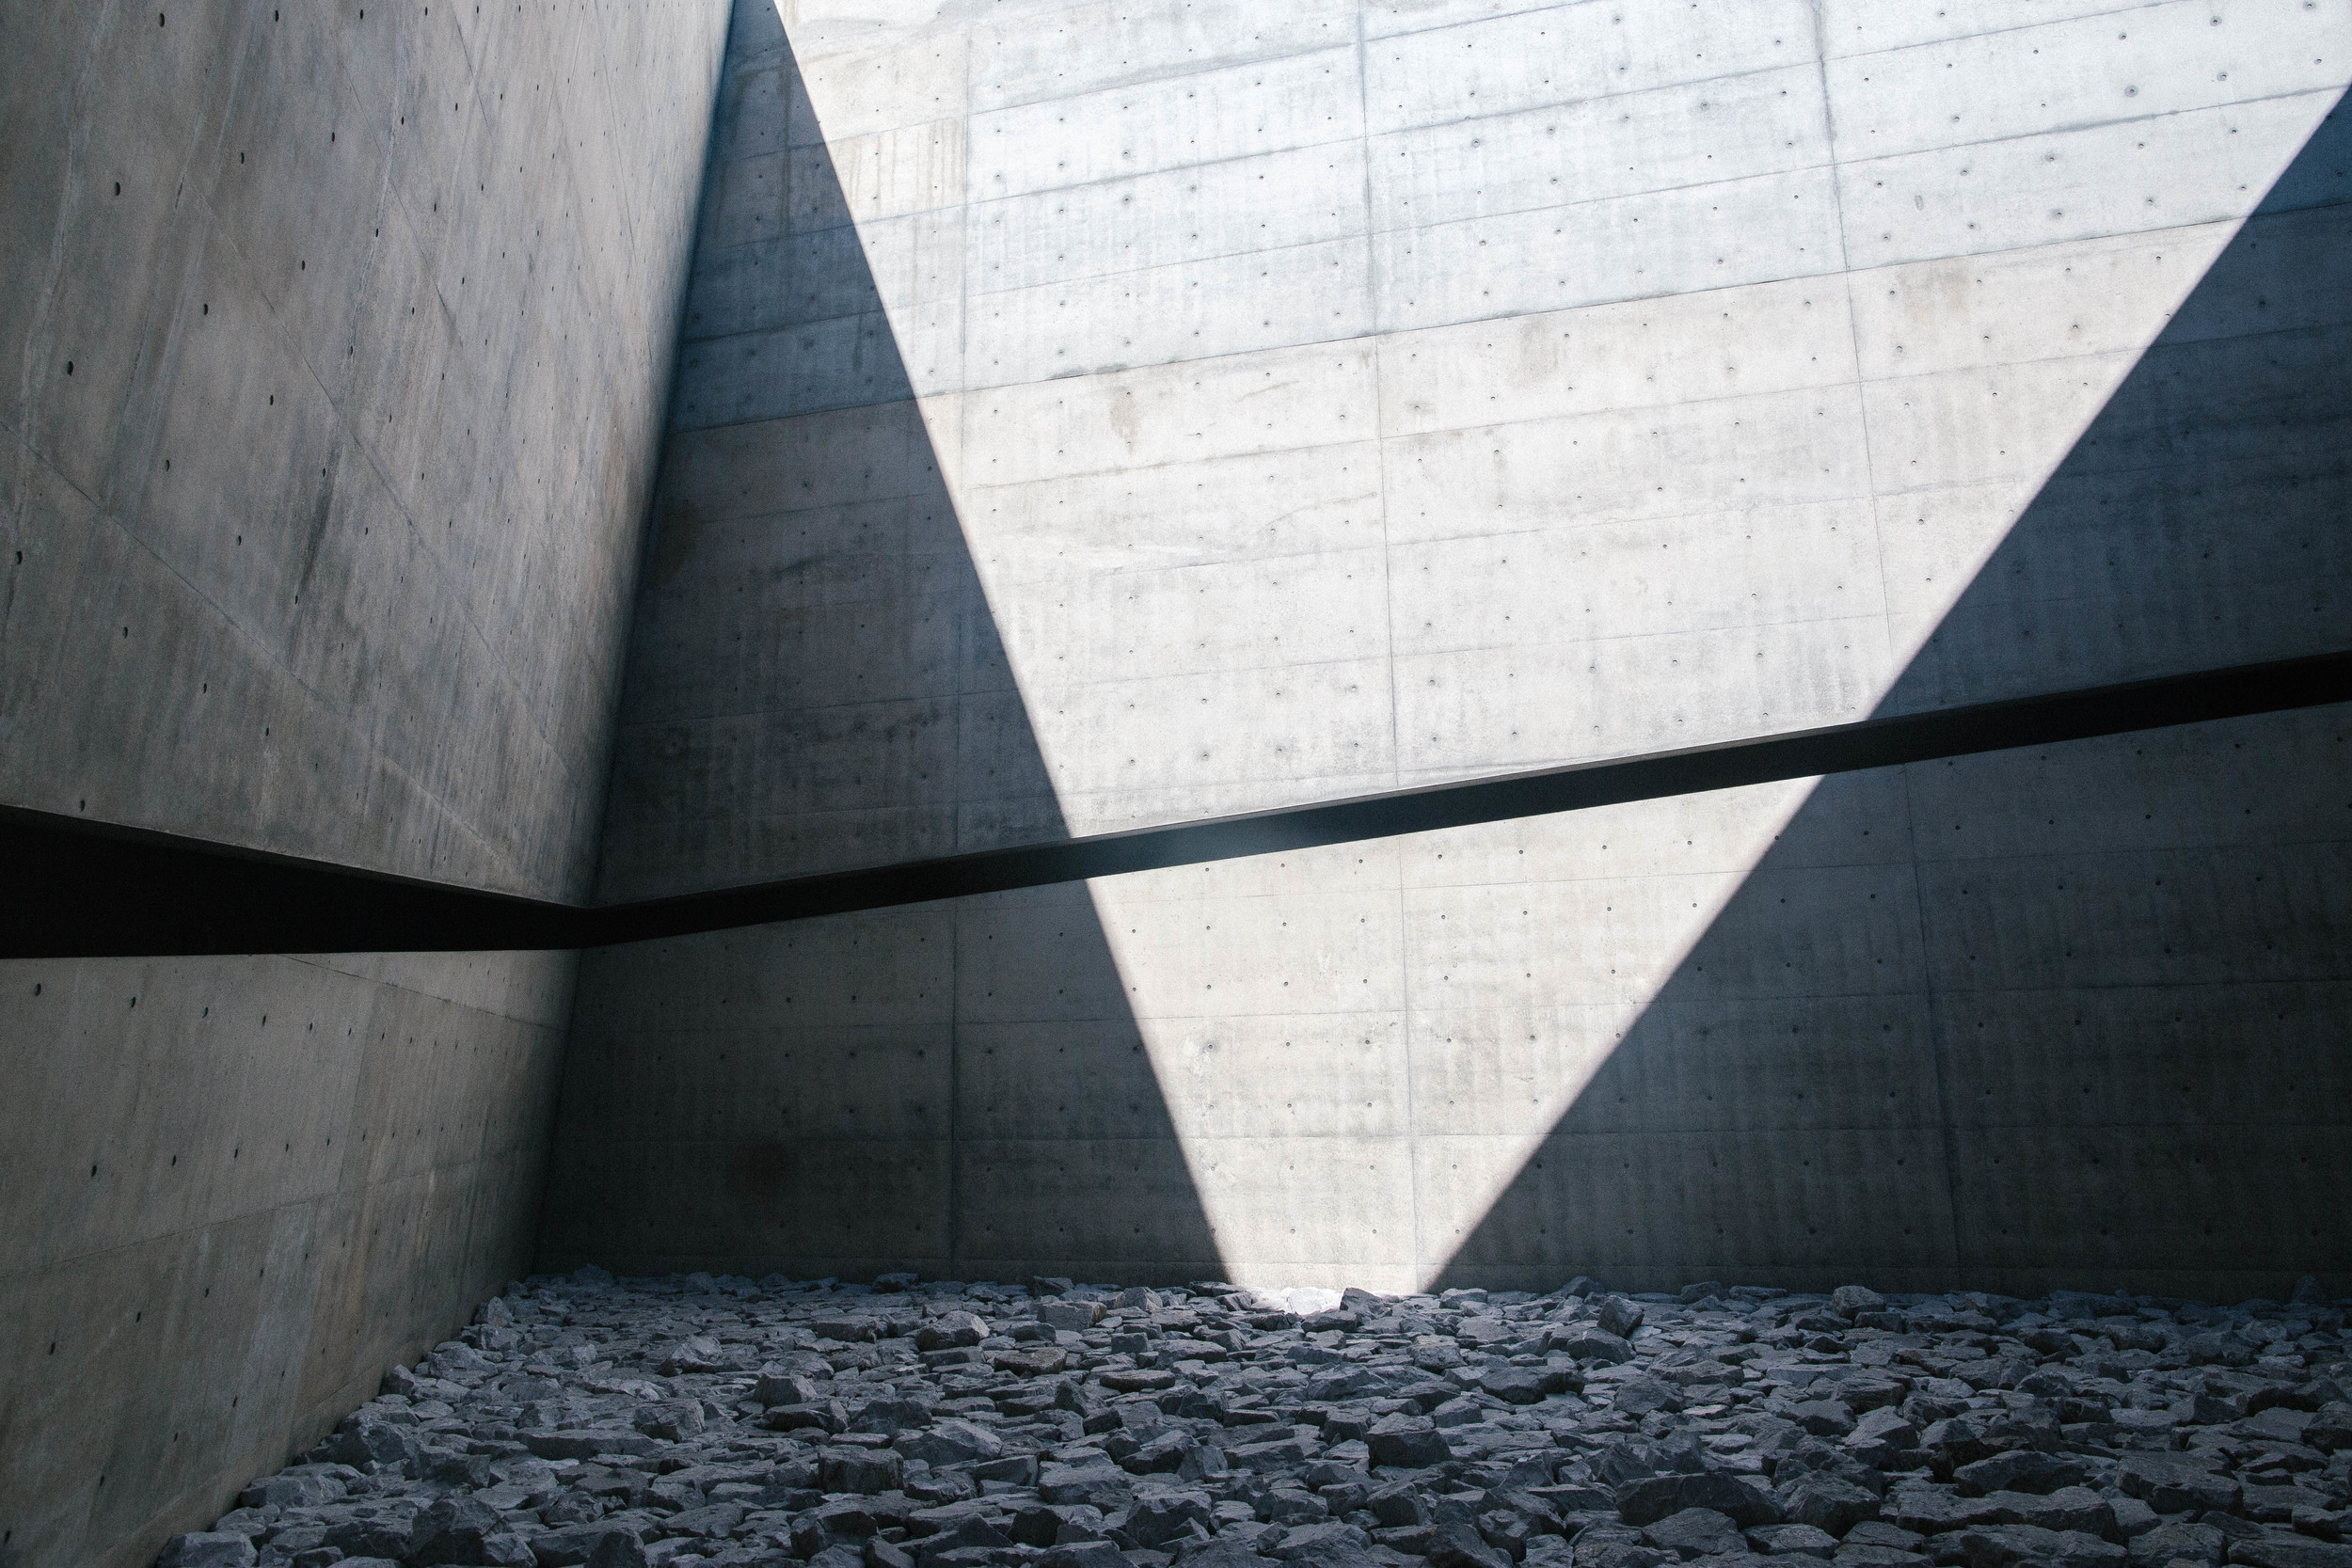 Tadao Ando's utilization of light